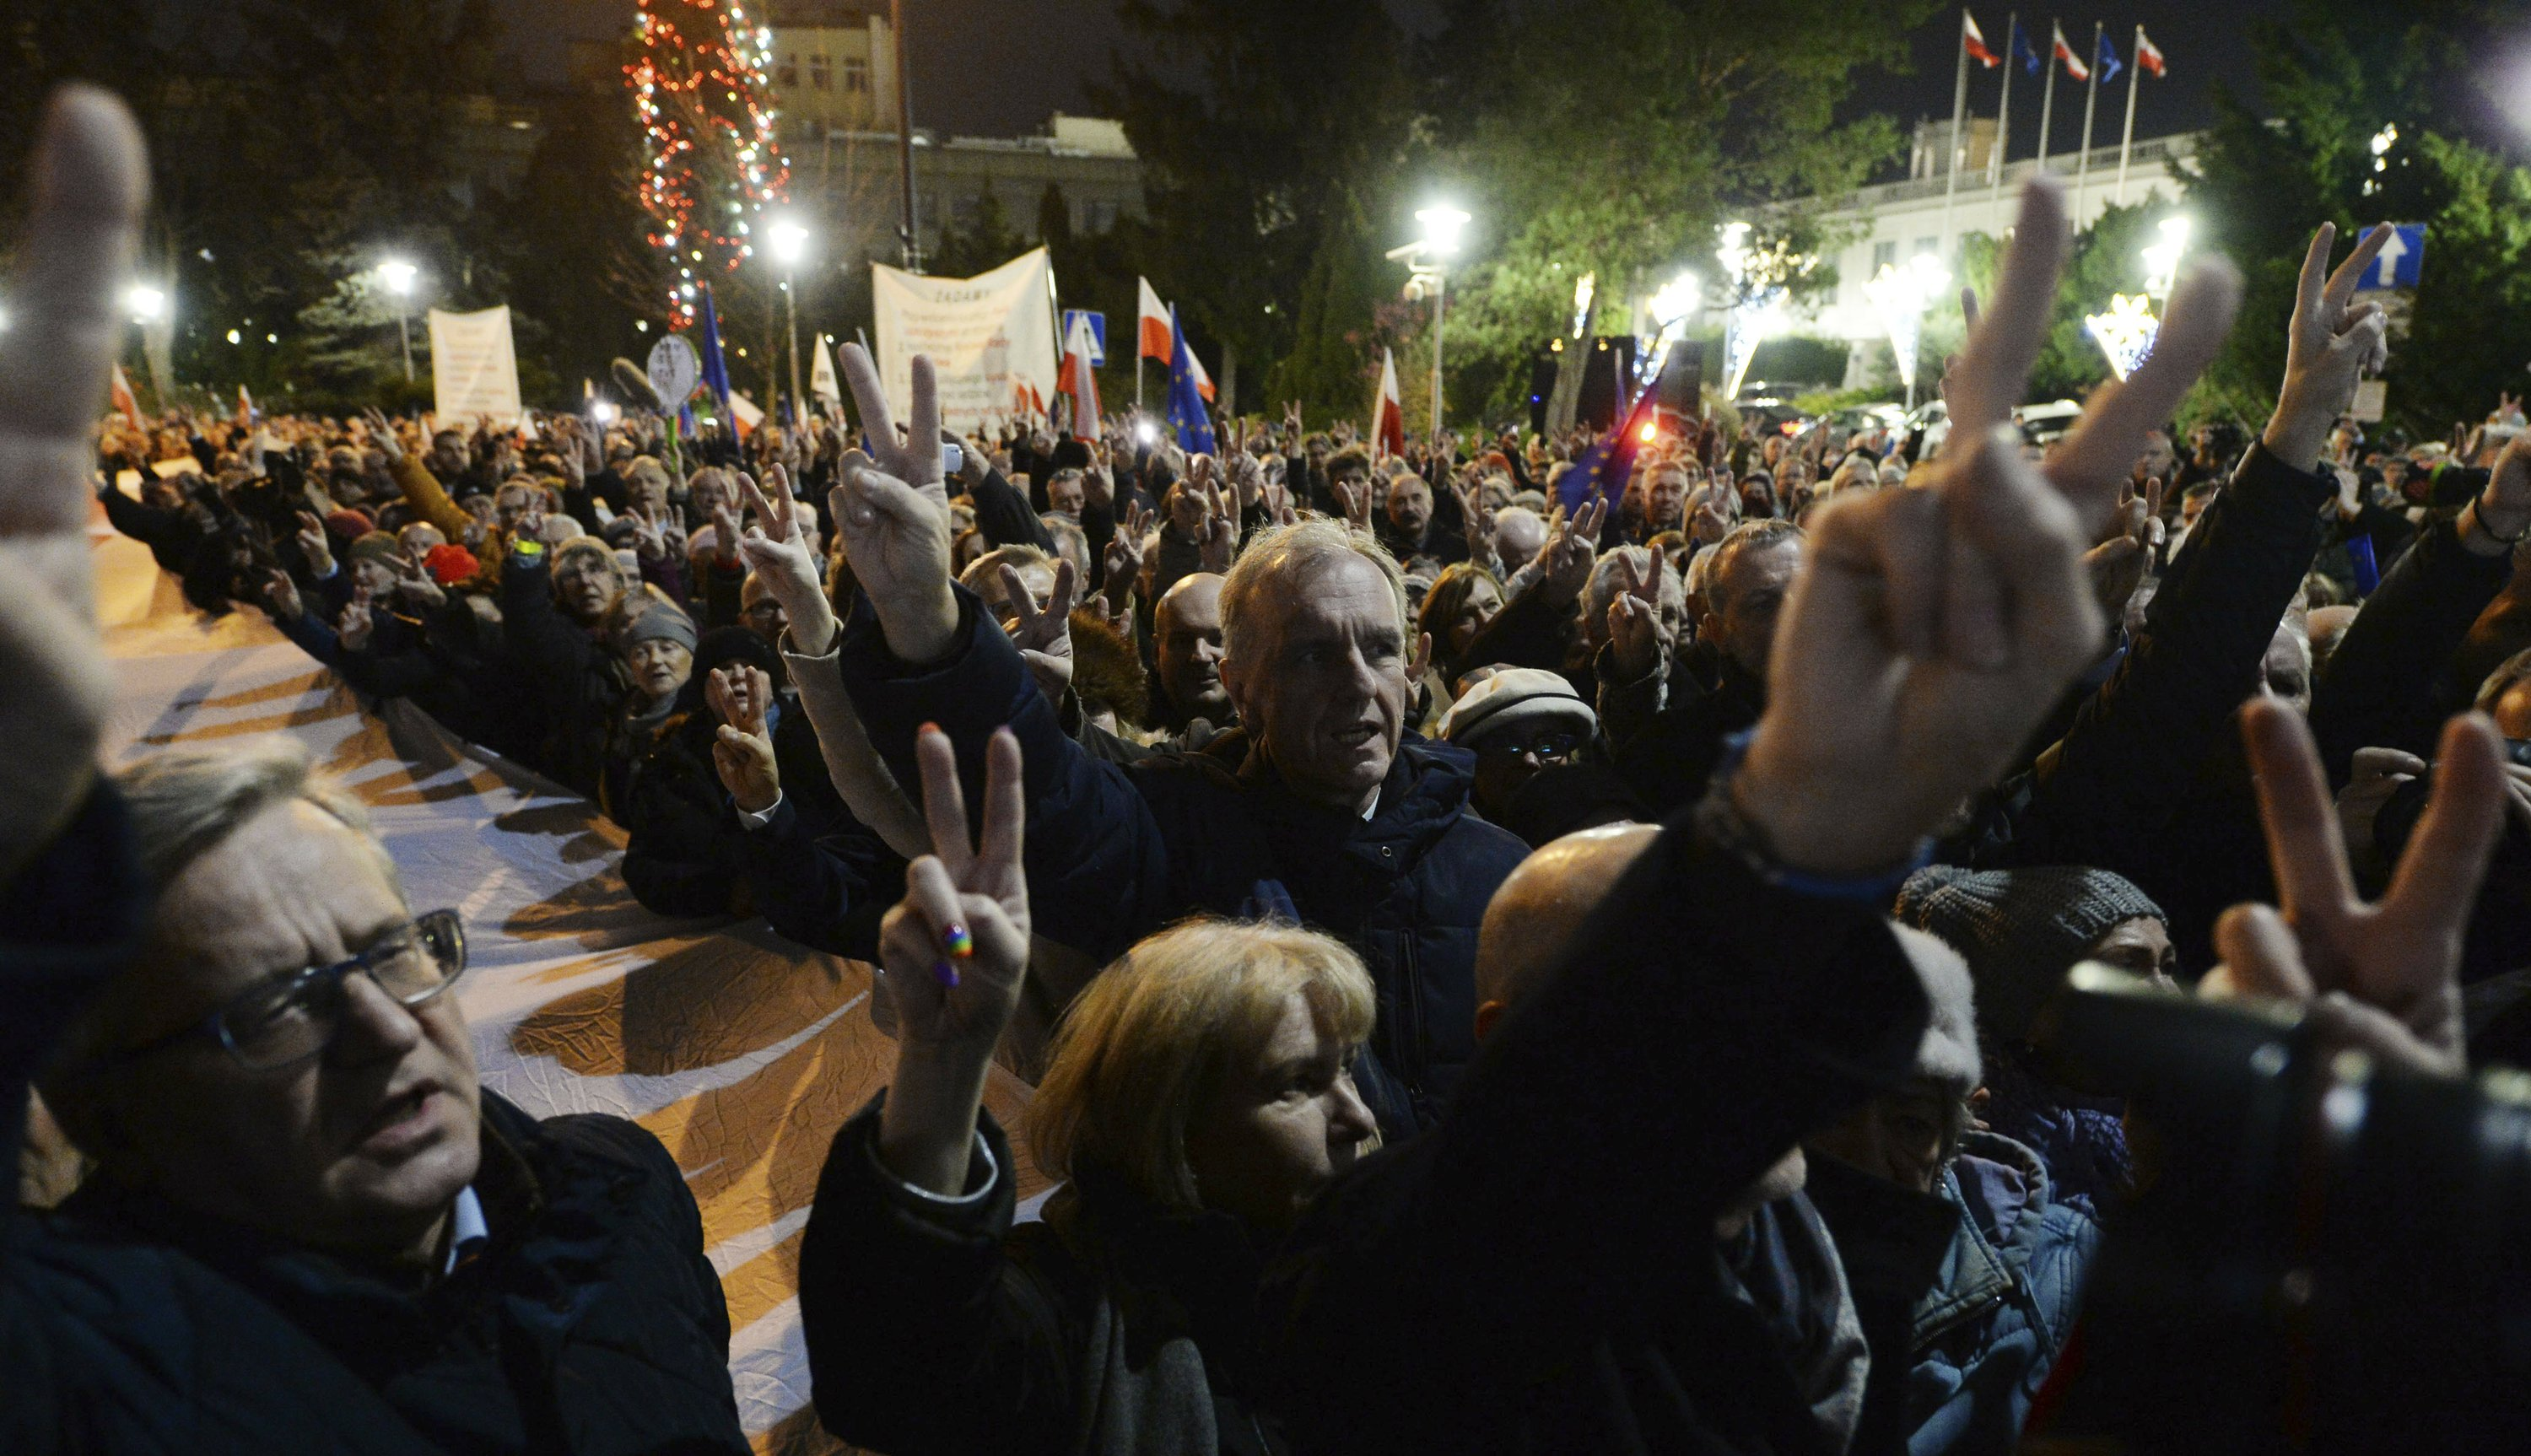 Mass protests erupt across Poland over plan to punish judges